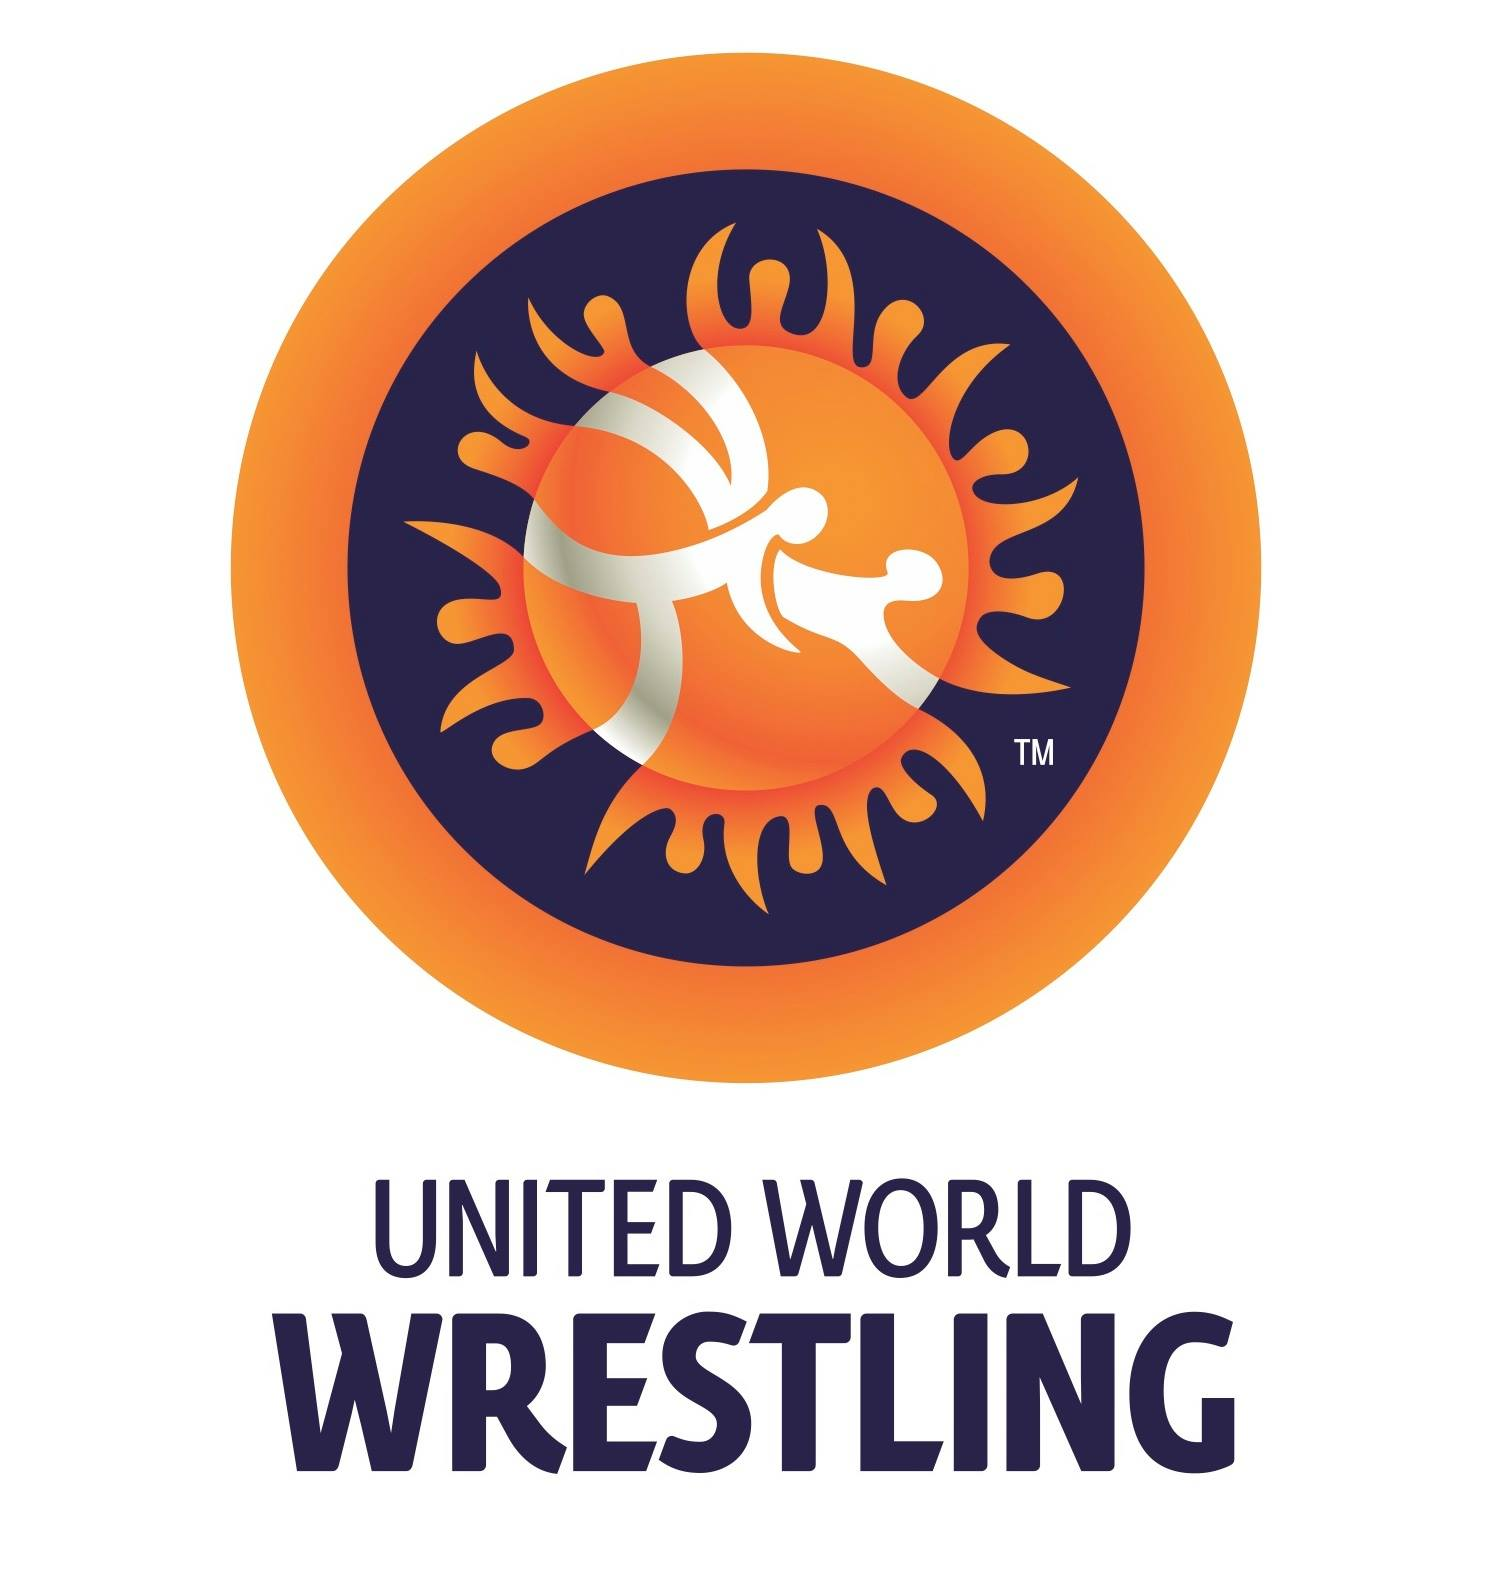 Wrestling's world governing body also voted to bring in a new name and brand during the Congress in Tashkent ©United World Wrestling/Facebook